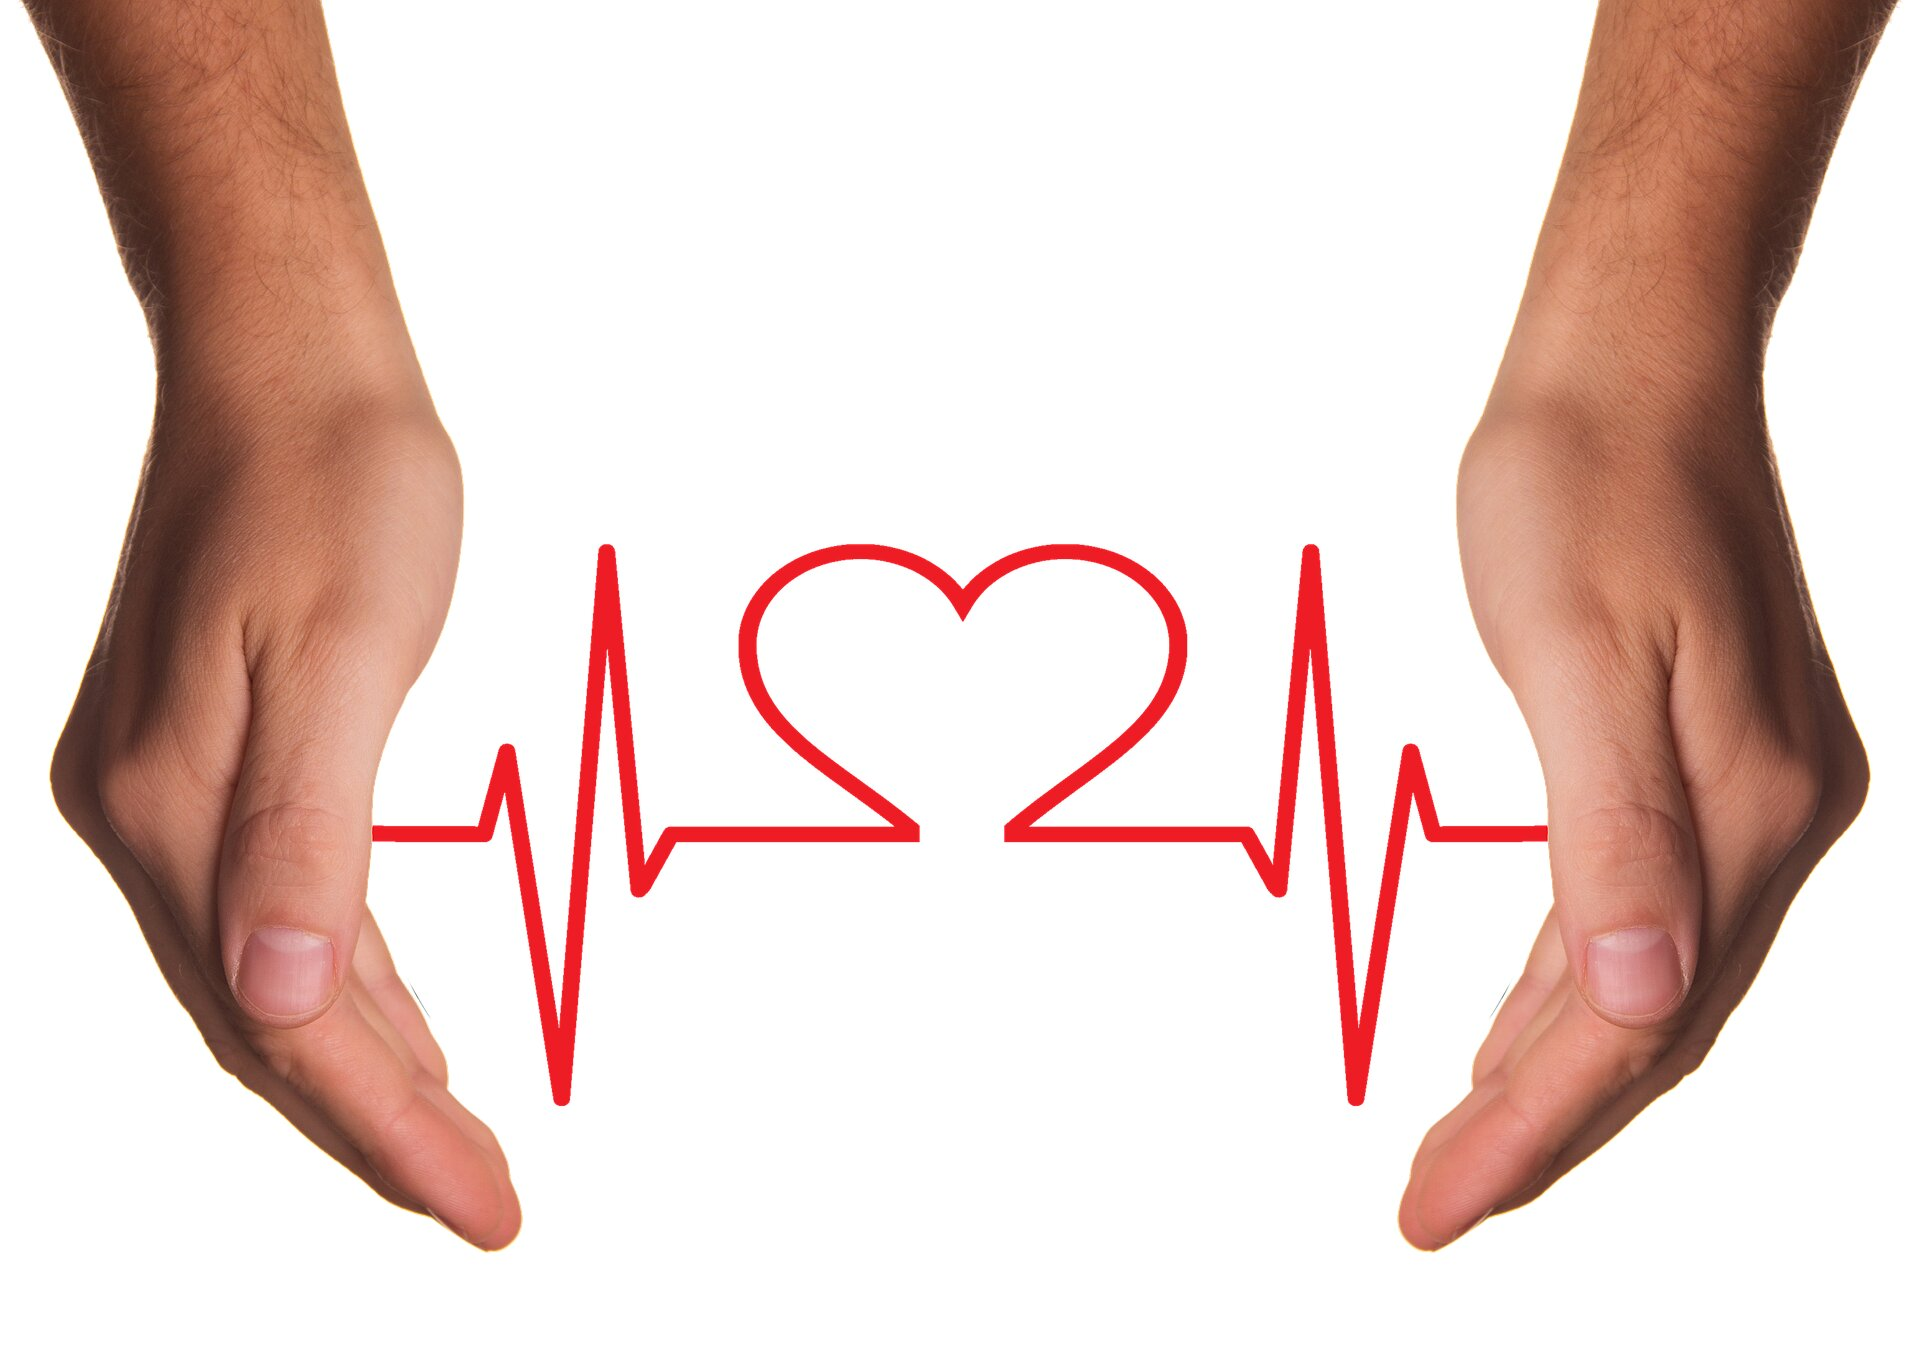 COVID-19 pandemic indirectly disrupted heart disease care